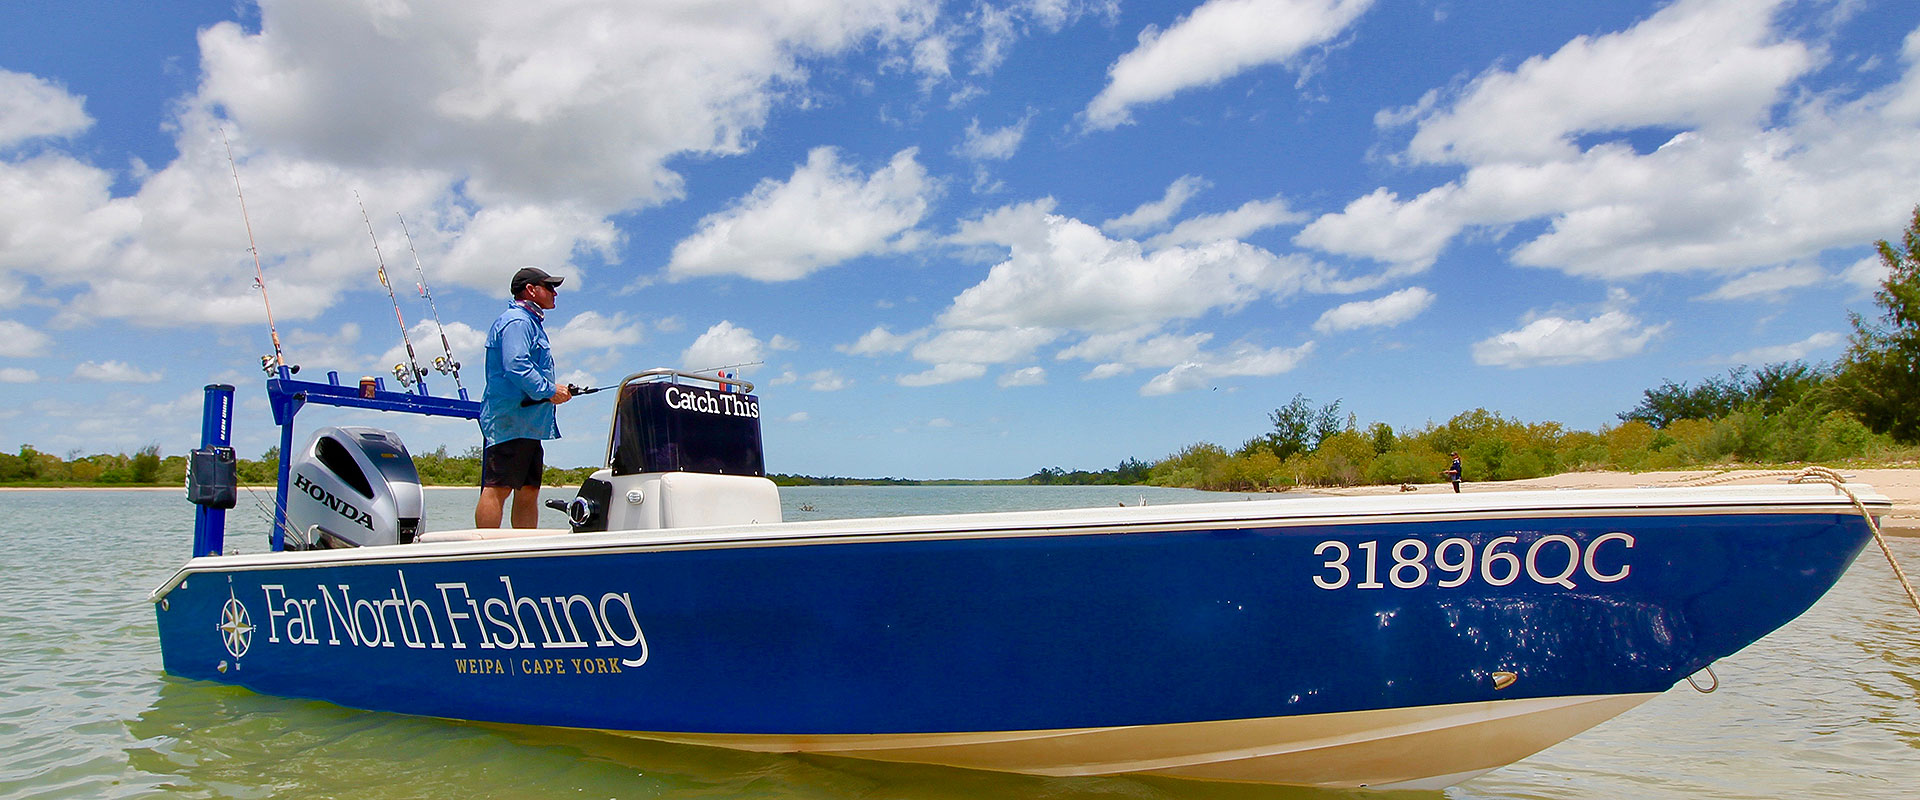 OUR BOATS <span>FAR NORTH FISHING WEIPA</span>